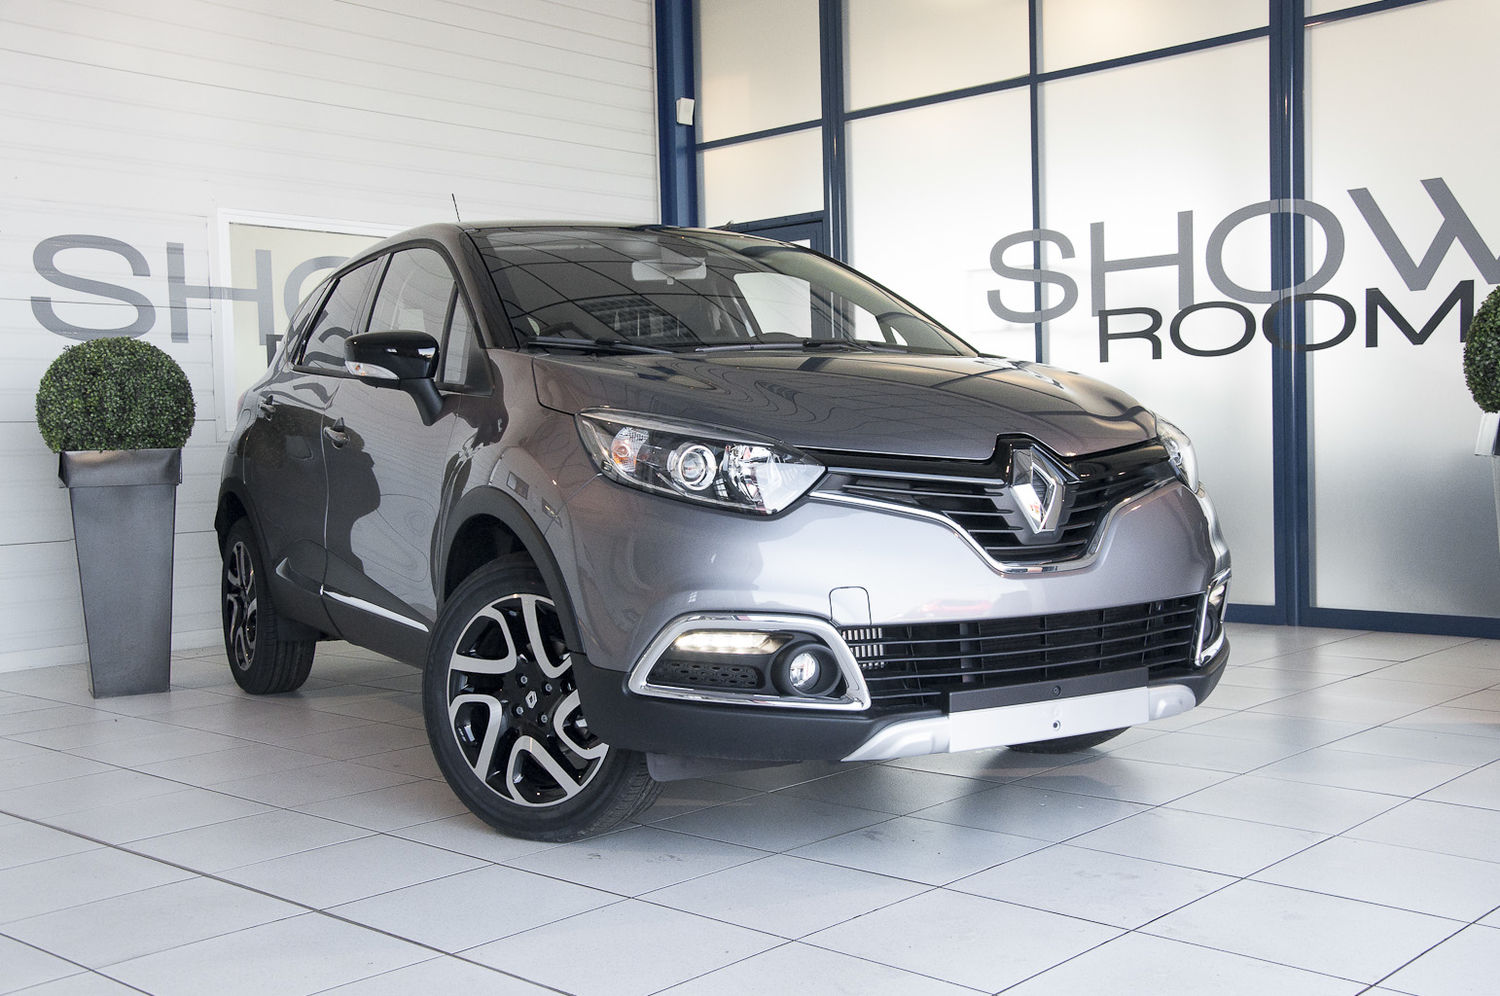 voiture renault captur 0 9 tce 90 ch helly hansen occasion essence 2017 20 km 16900. Black Bedroom Furniture Sets. Home Design Ideas